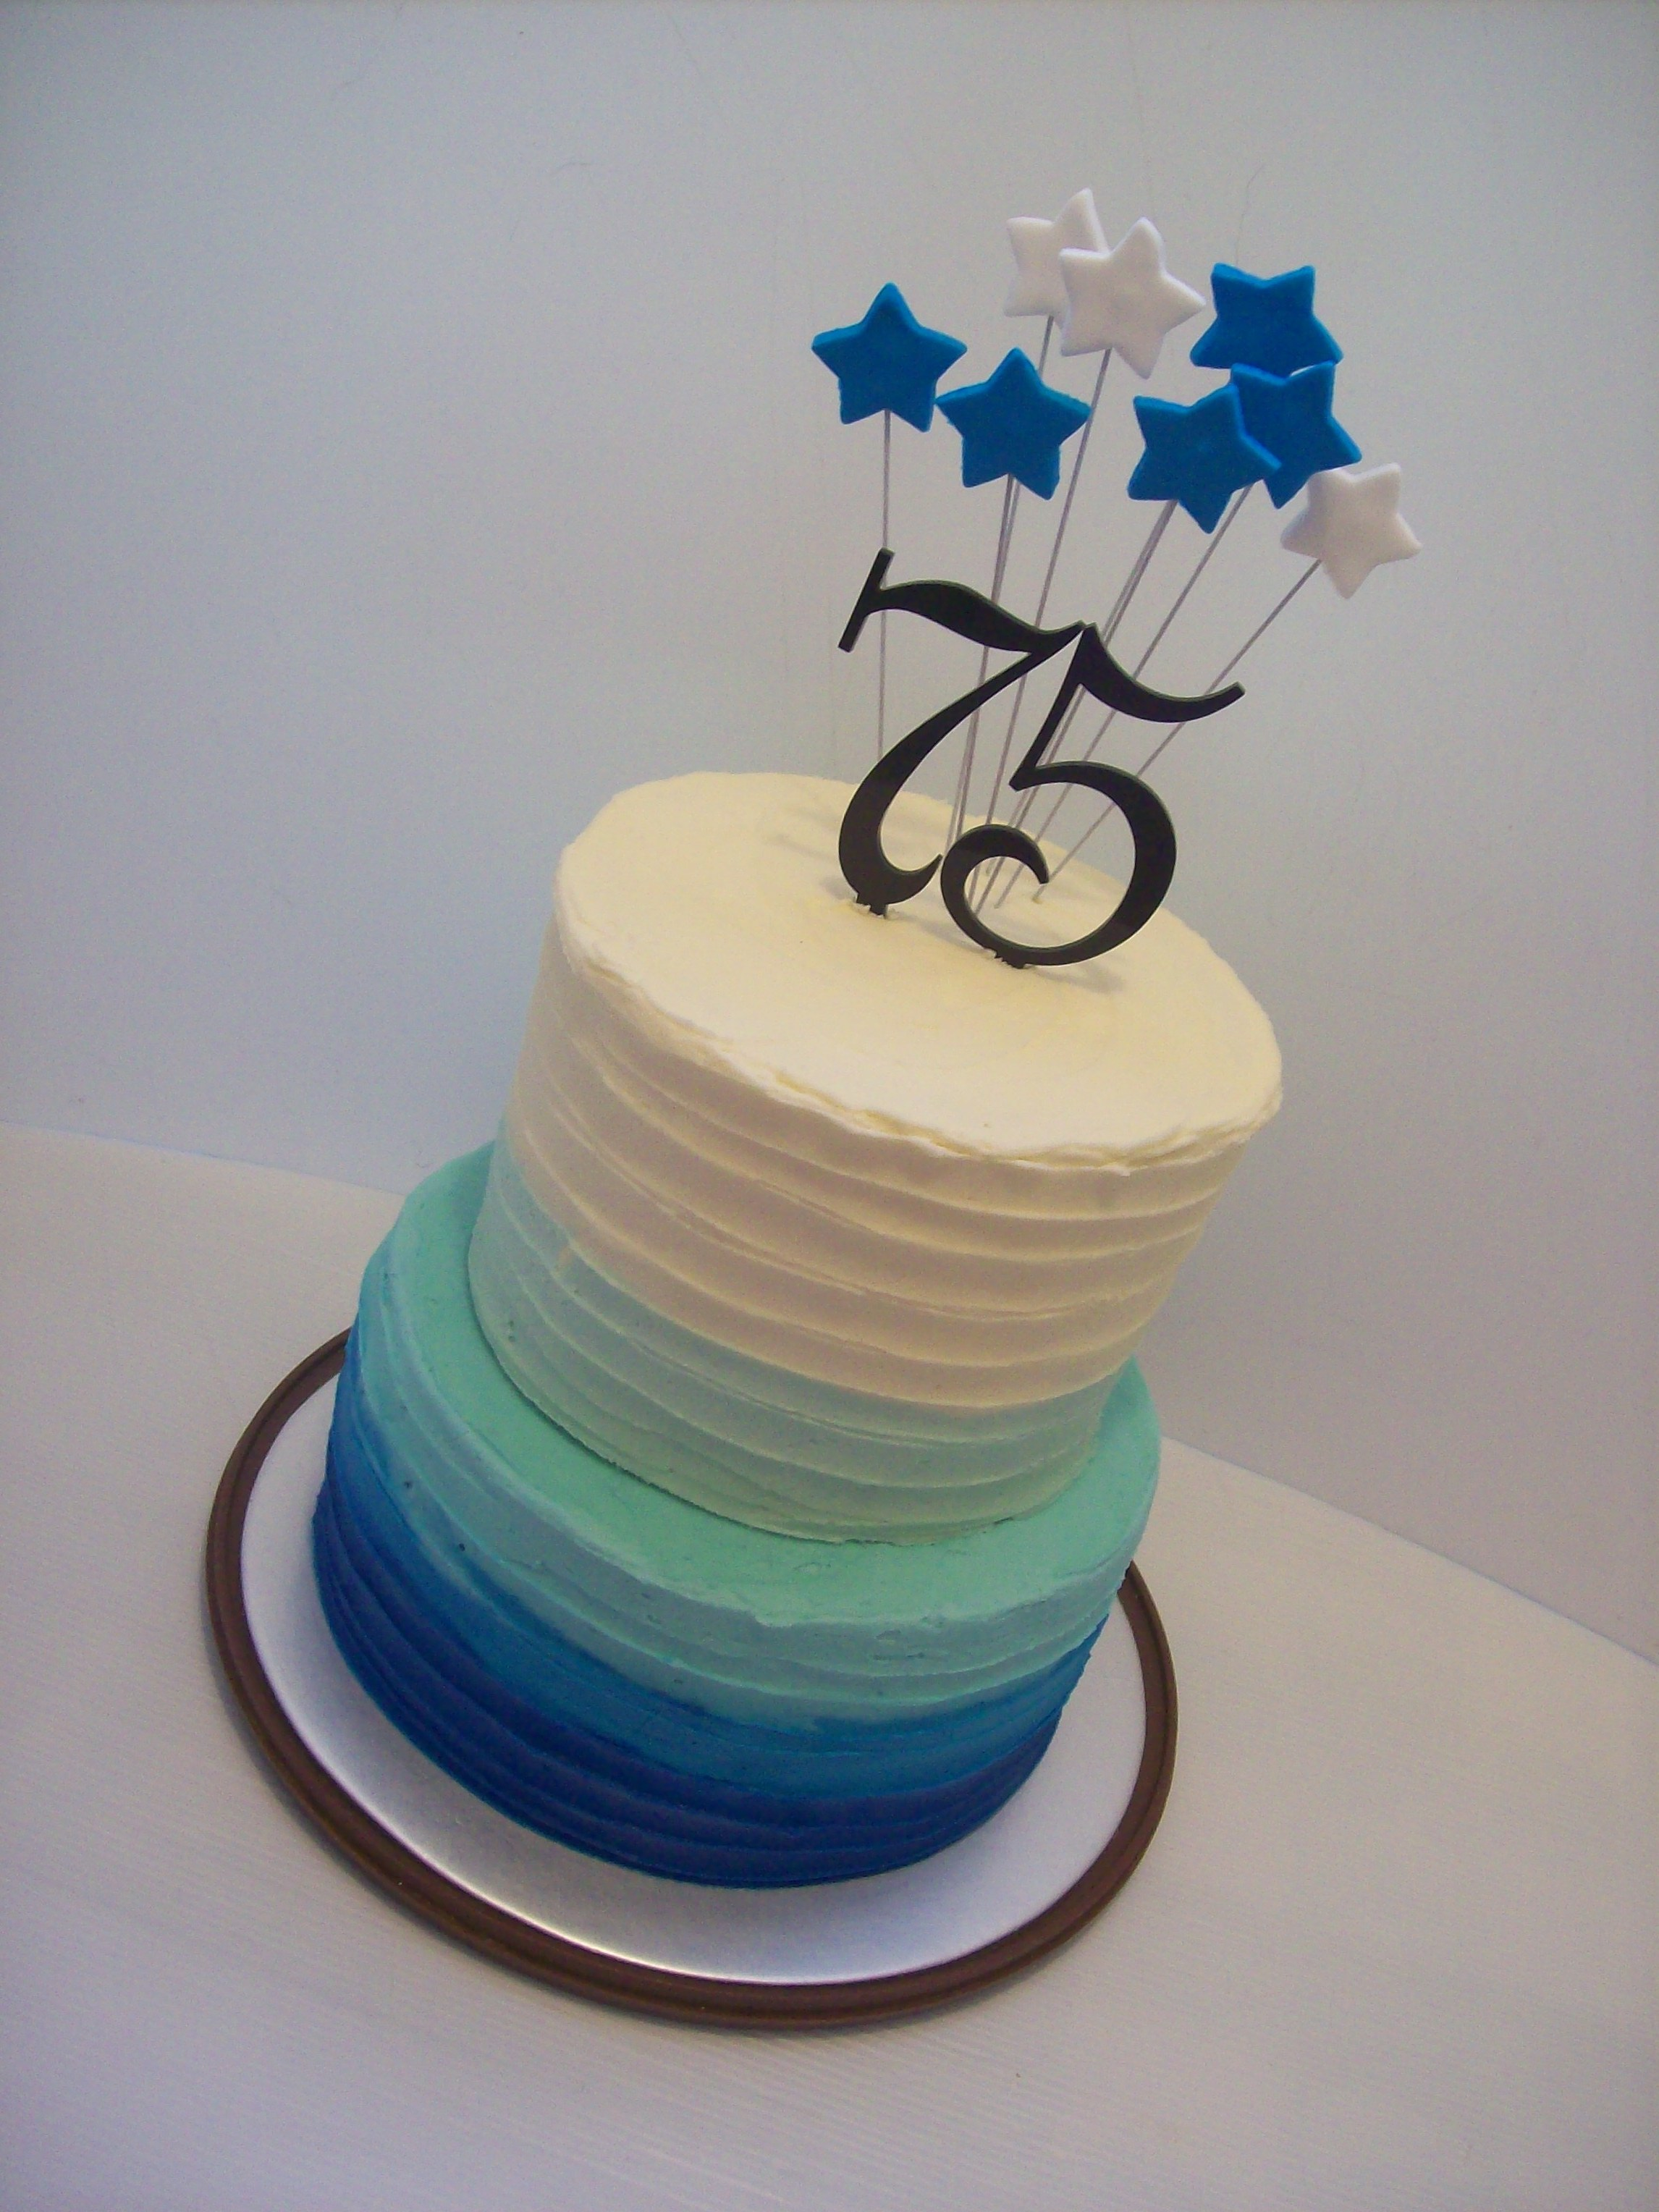 75th Birthday Cake 295 Blue